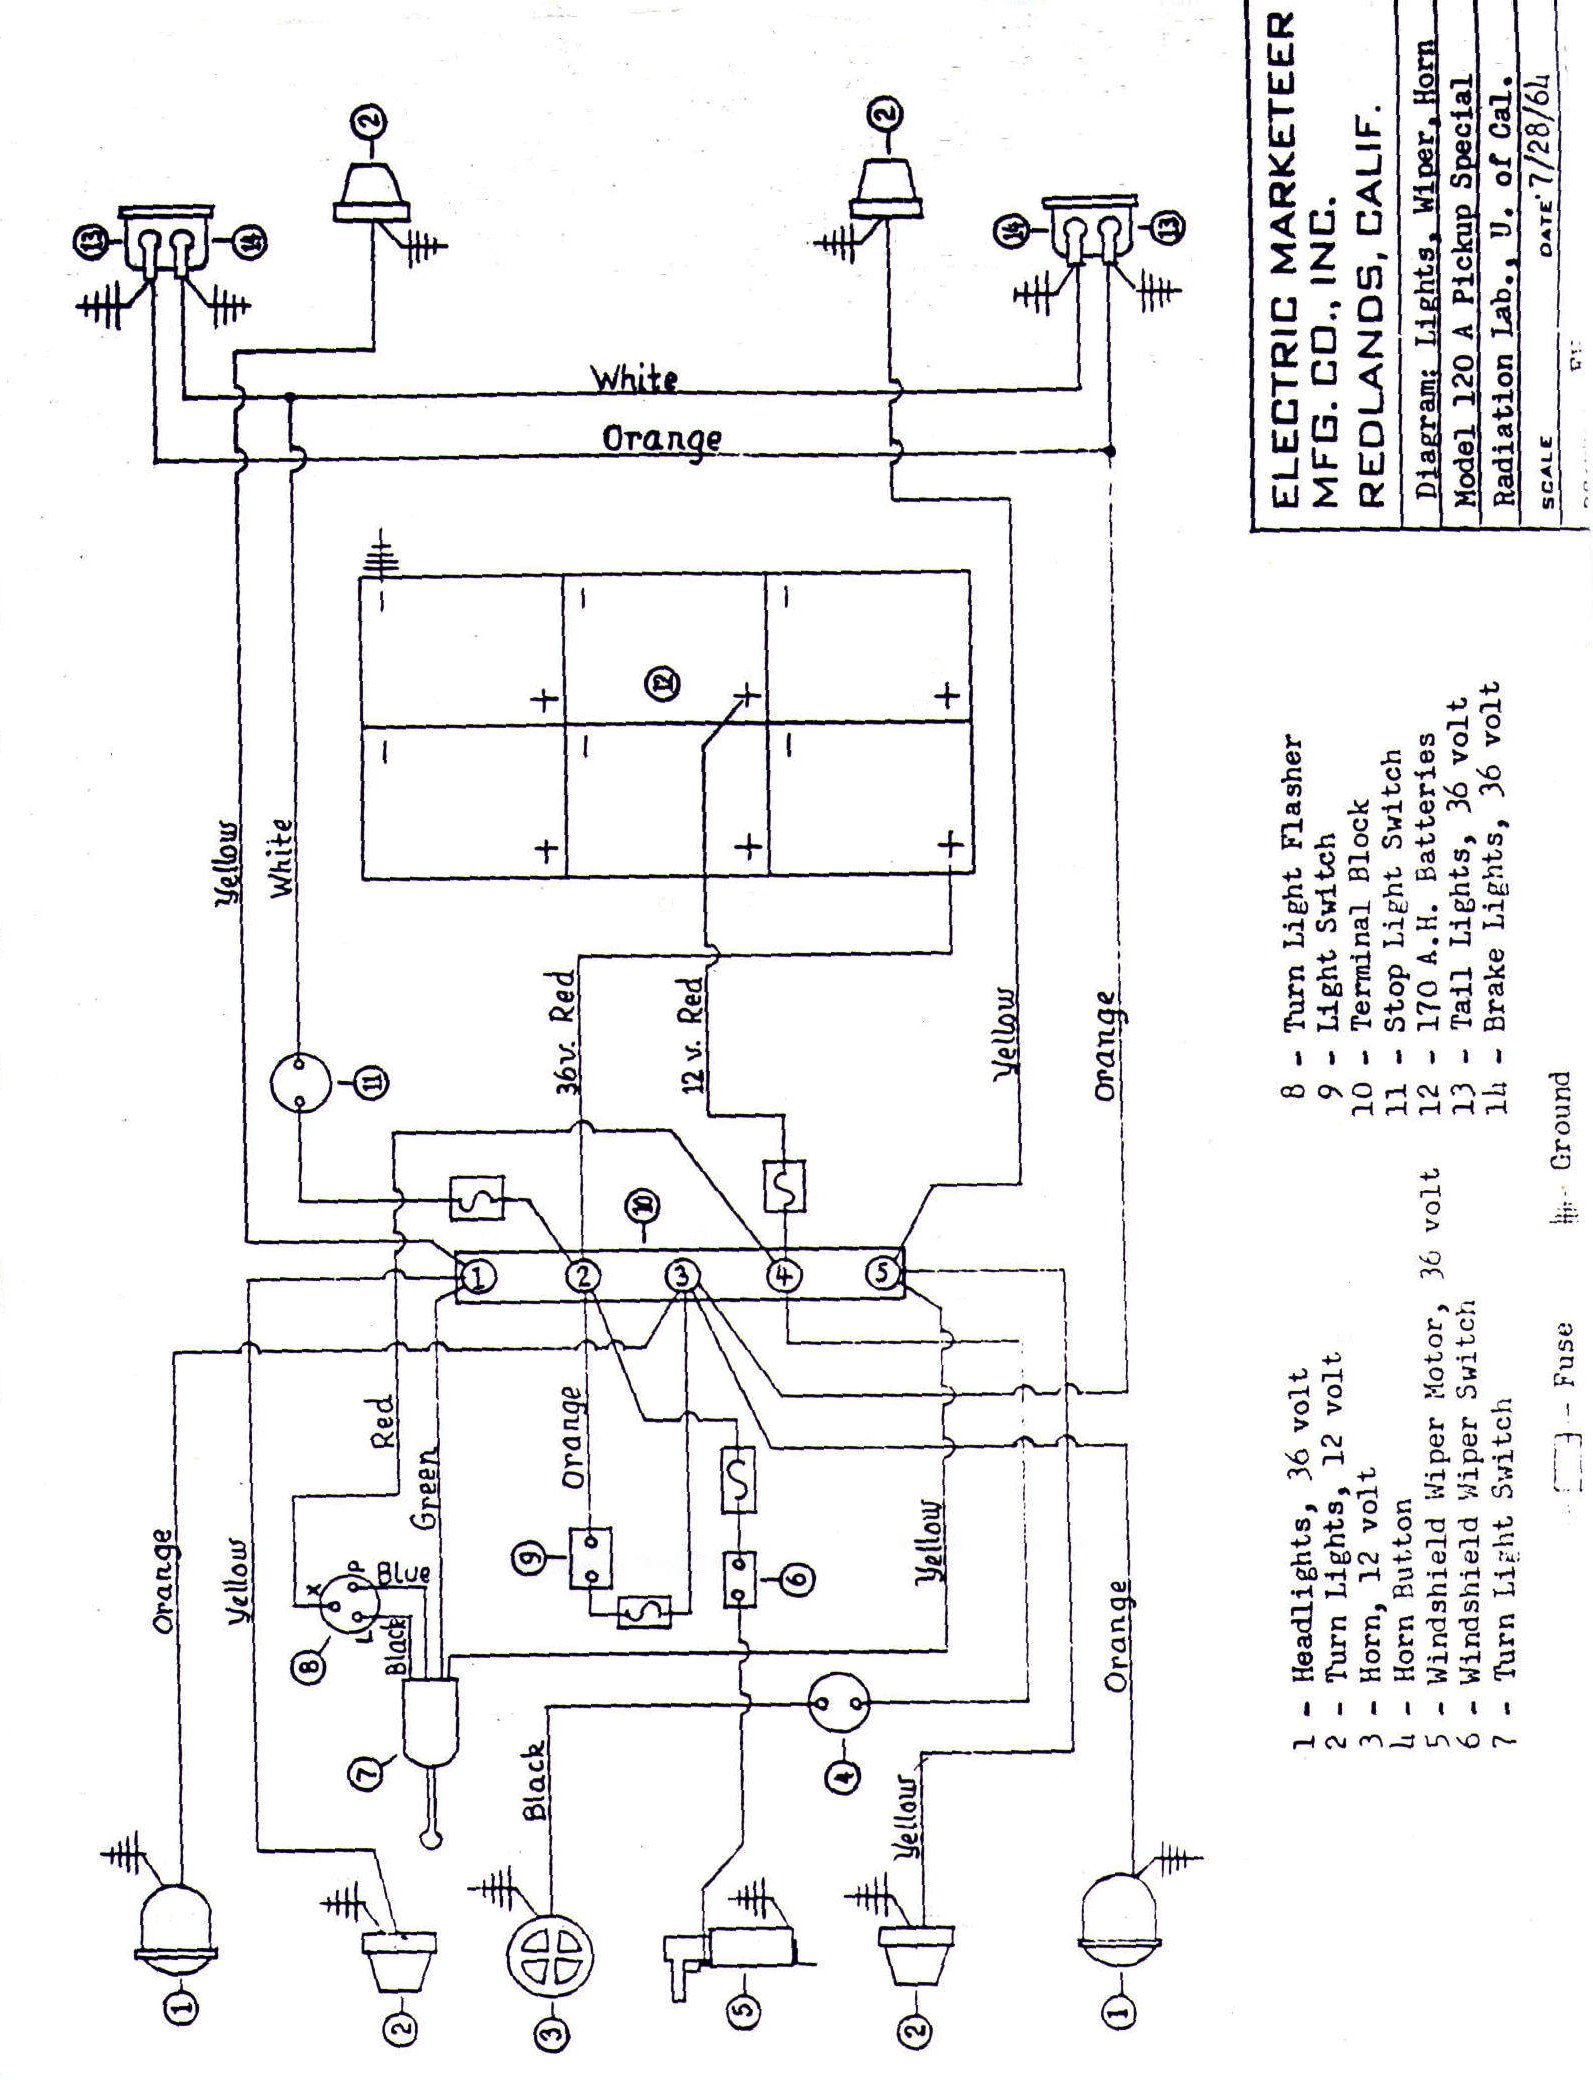 Markeeter_Wiring_Diagram_2 vintagegolfcartparts com westinghouse golf cart wiring diagram at crackthecode.co